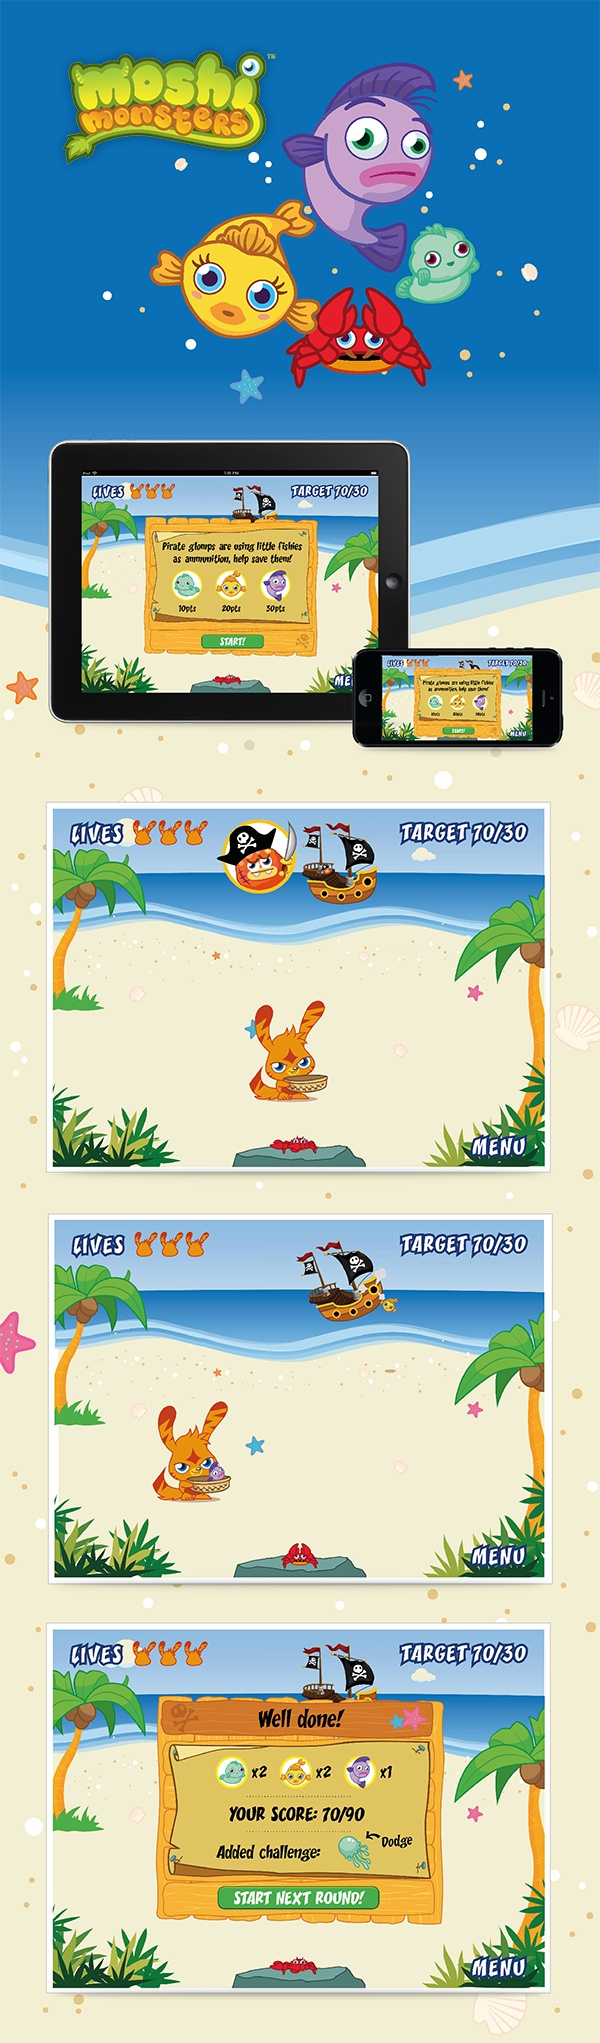 #Moshi #Monsters - fish #game. Created new fish and crab #characters, #interactive #concept for #gameplay, #art #work #executed on #Adobe #Illustrator. #kids #children #playbility